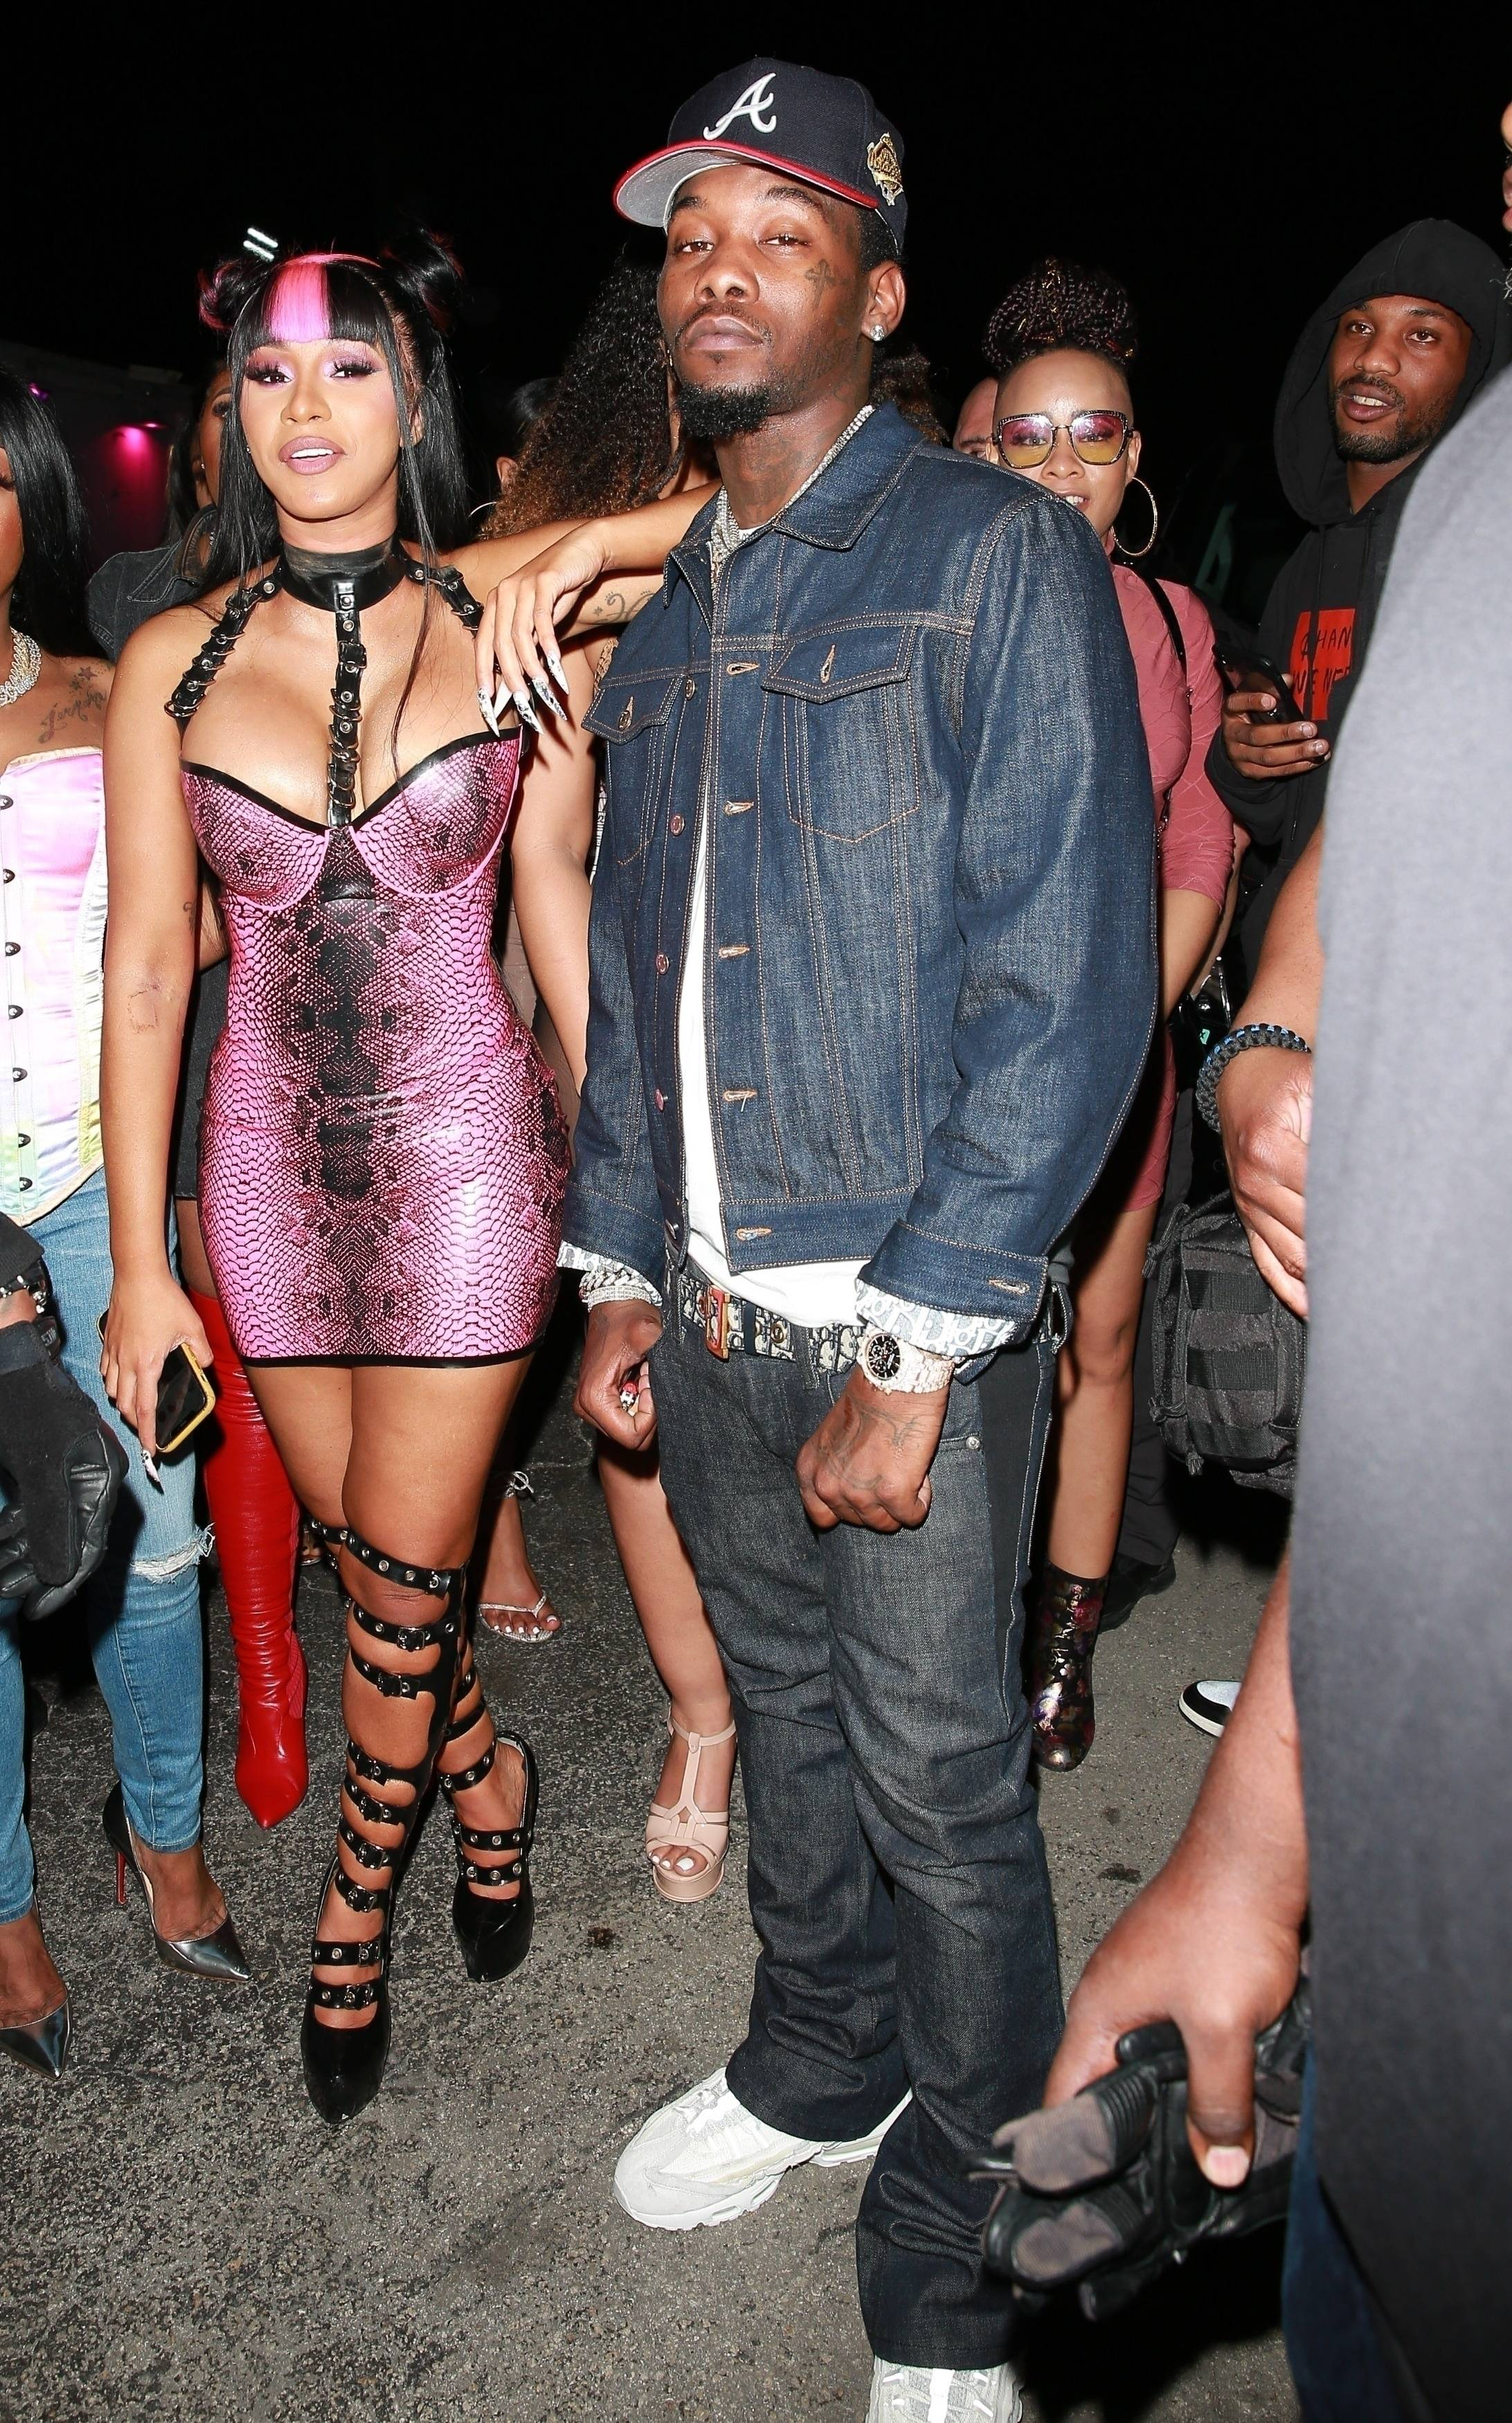 Date Night With Bae - Cardi Band her husband,Offset, caused quite a scene as headed into a Miami strip club last night (Jan. 30). Never one to miss an opportunity to show off her amazing body, the mother of one styled in a skintight pink snakeskin dress with sky-high stilettos to match. Yes, Cardi! And the hair is everything!(Photo: Backgrid) (Photo: Backgrid)